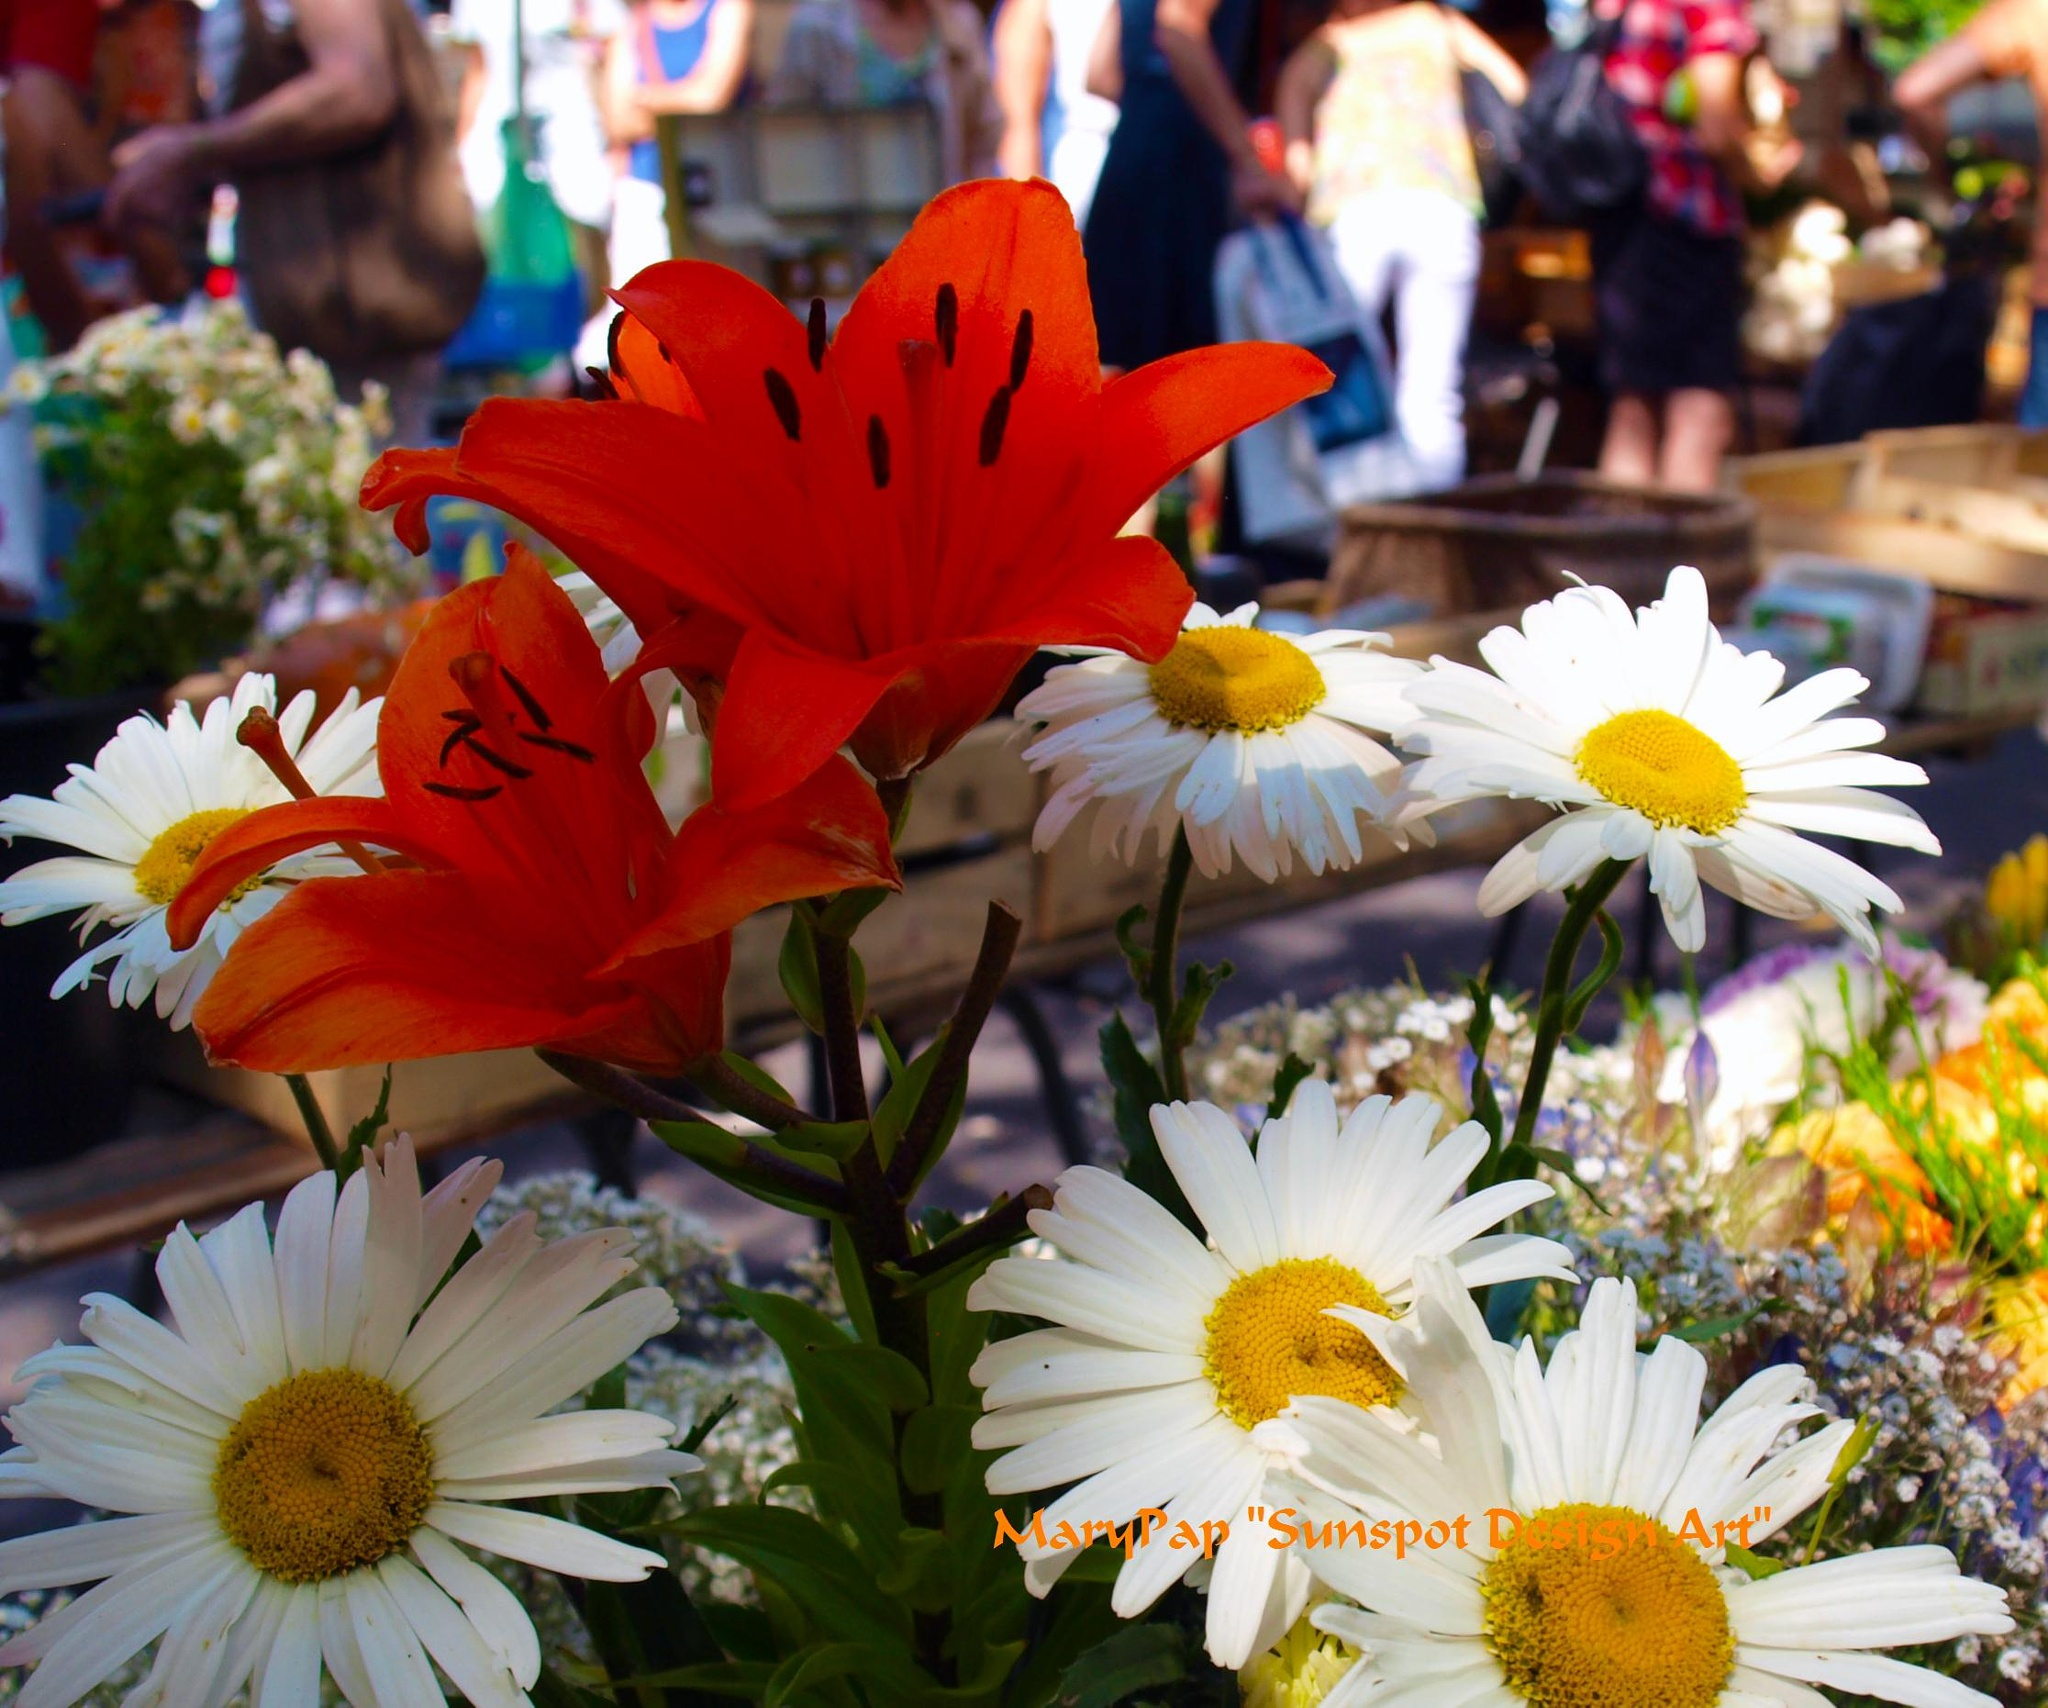 flowers in the market by Mary Pap